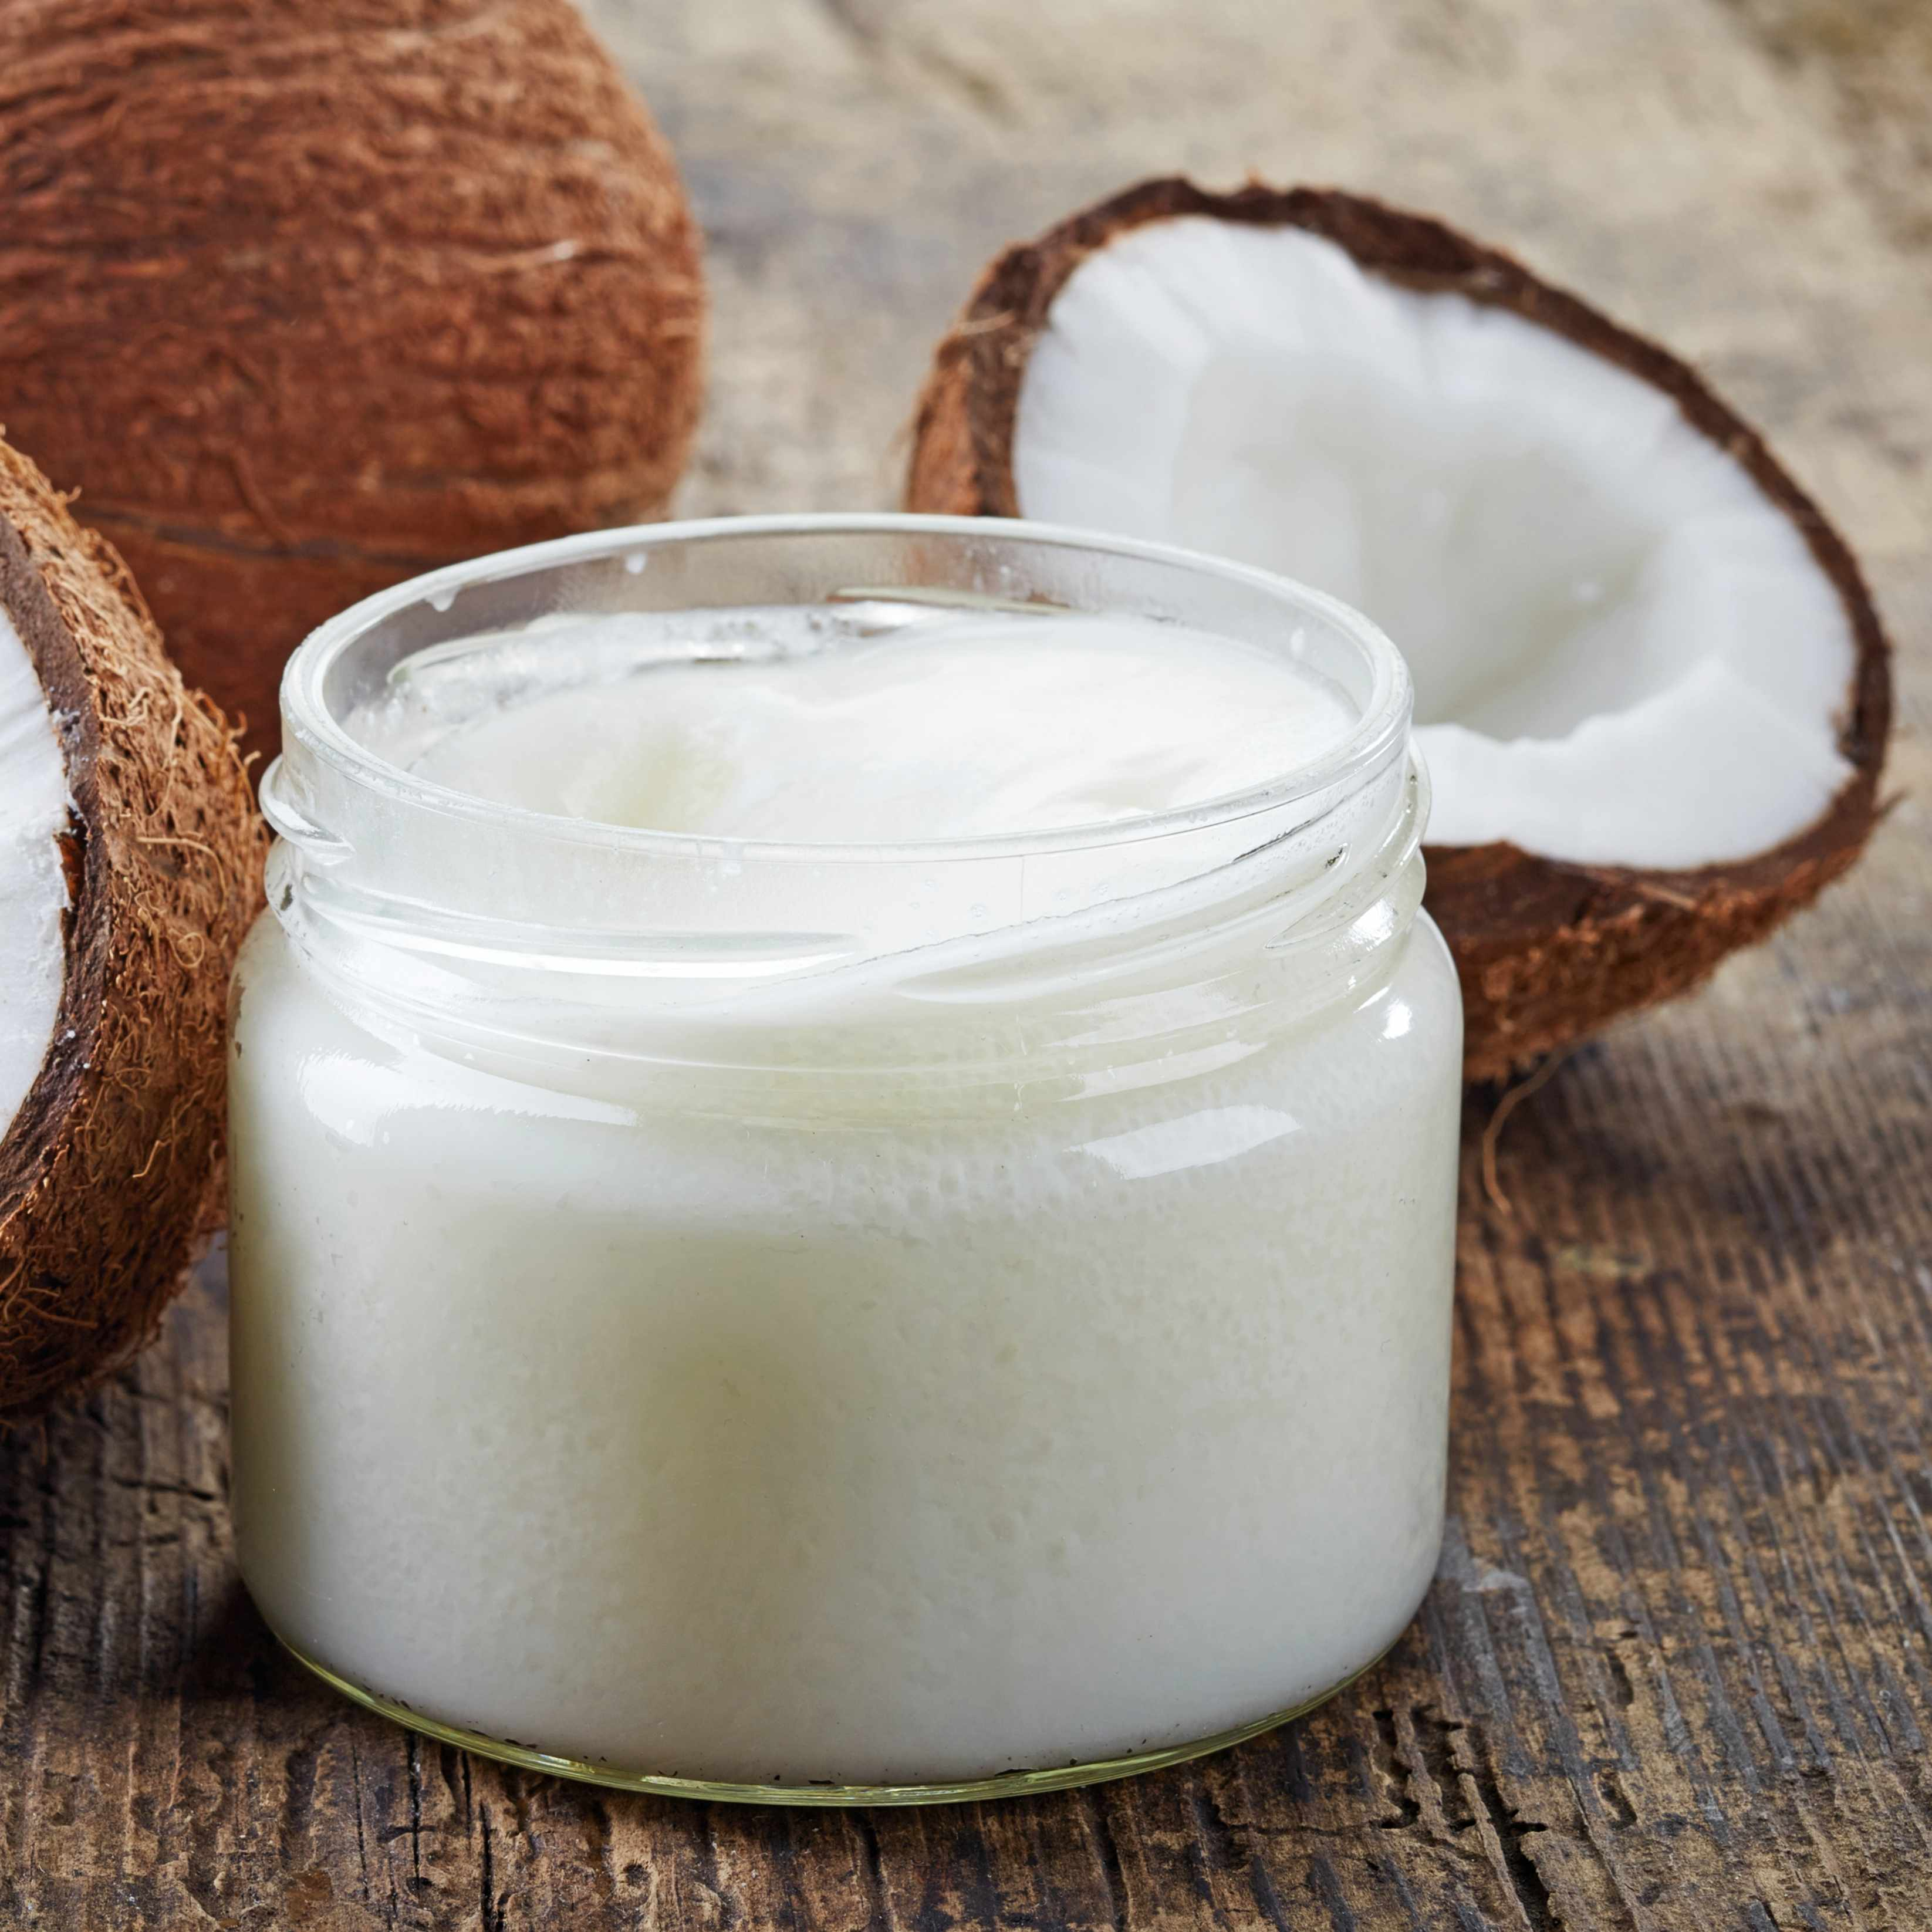 a coconut cut in half, sitting on a wooden table with a jar of coconut oil or butter